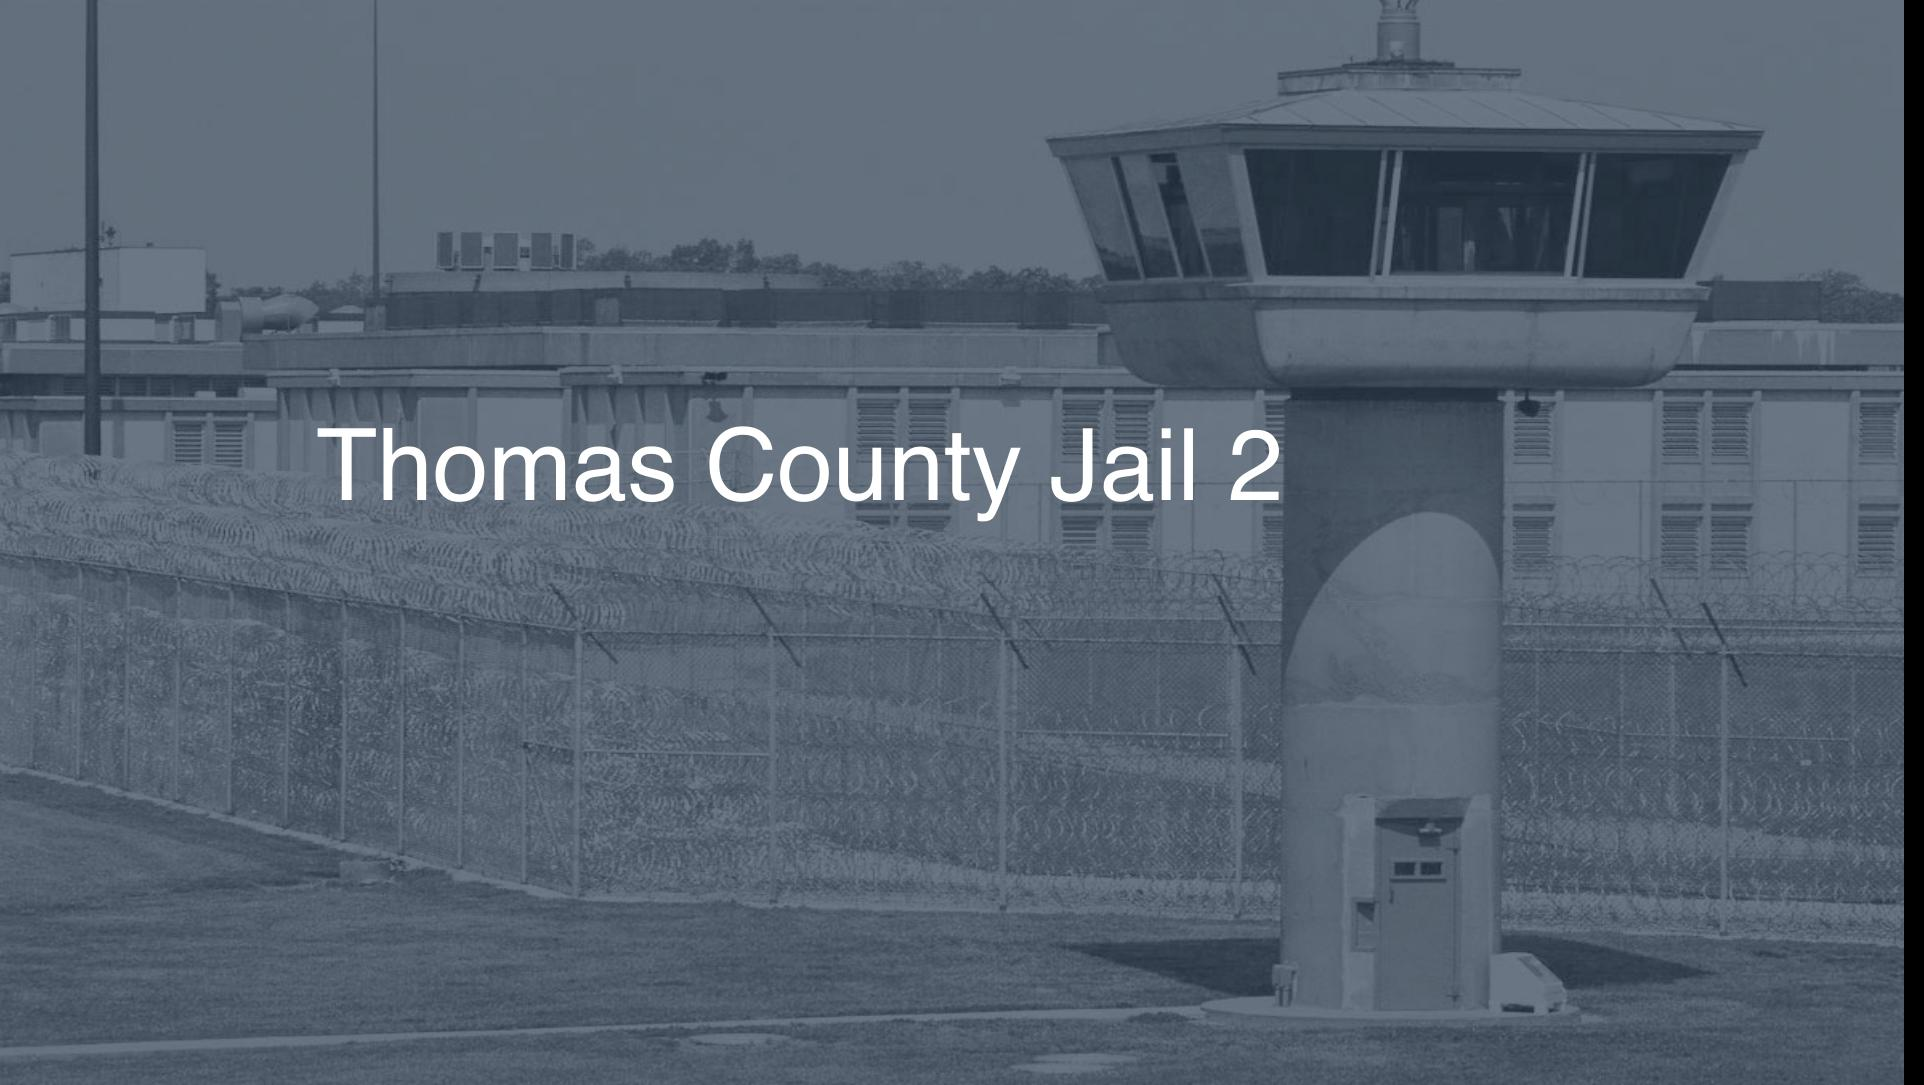 Thomas County Jail Inmate Search, Lookup & Services - Pigeonly